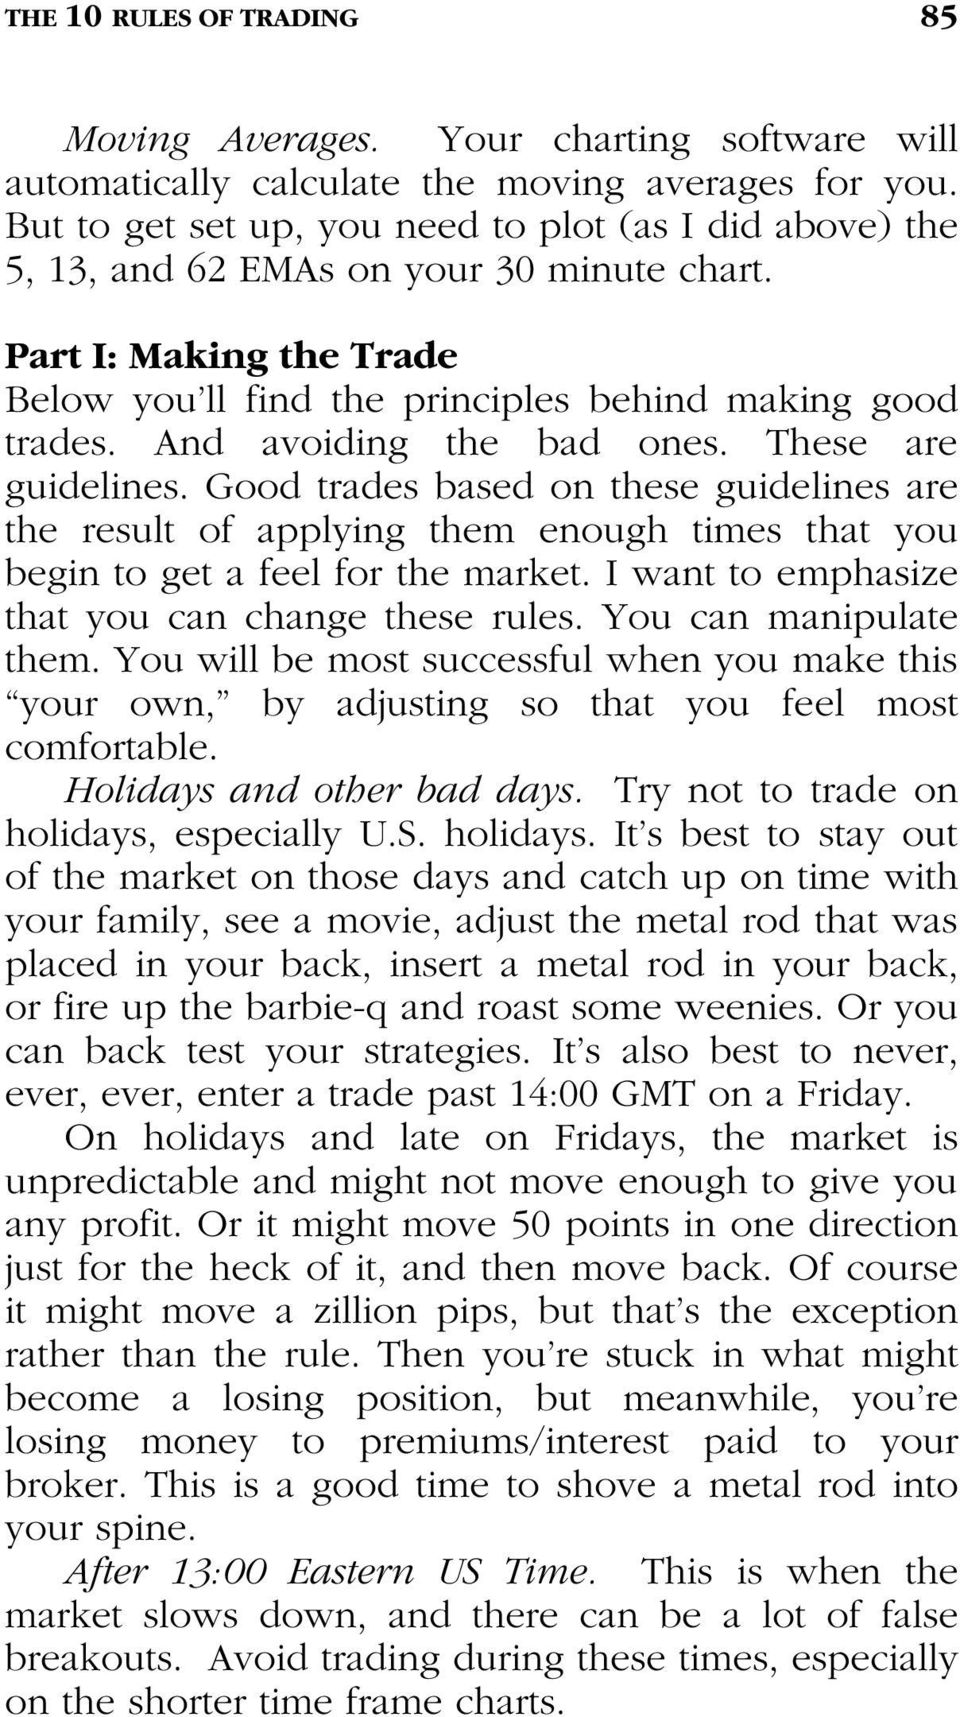 And avoiding the bad ones. These are guidelines. Good trades based on these guidelines are the result of applying them enough times that you begin to get a feel for the market.